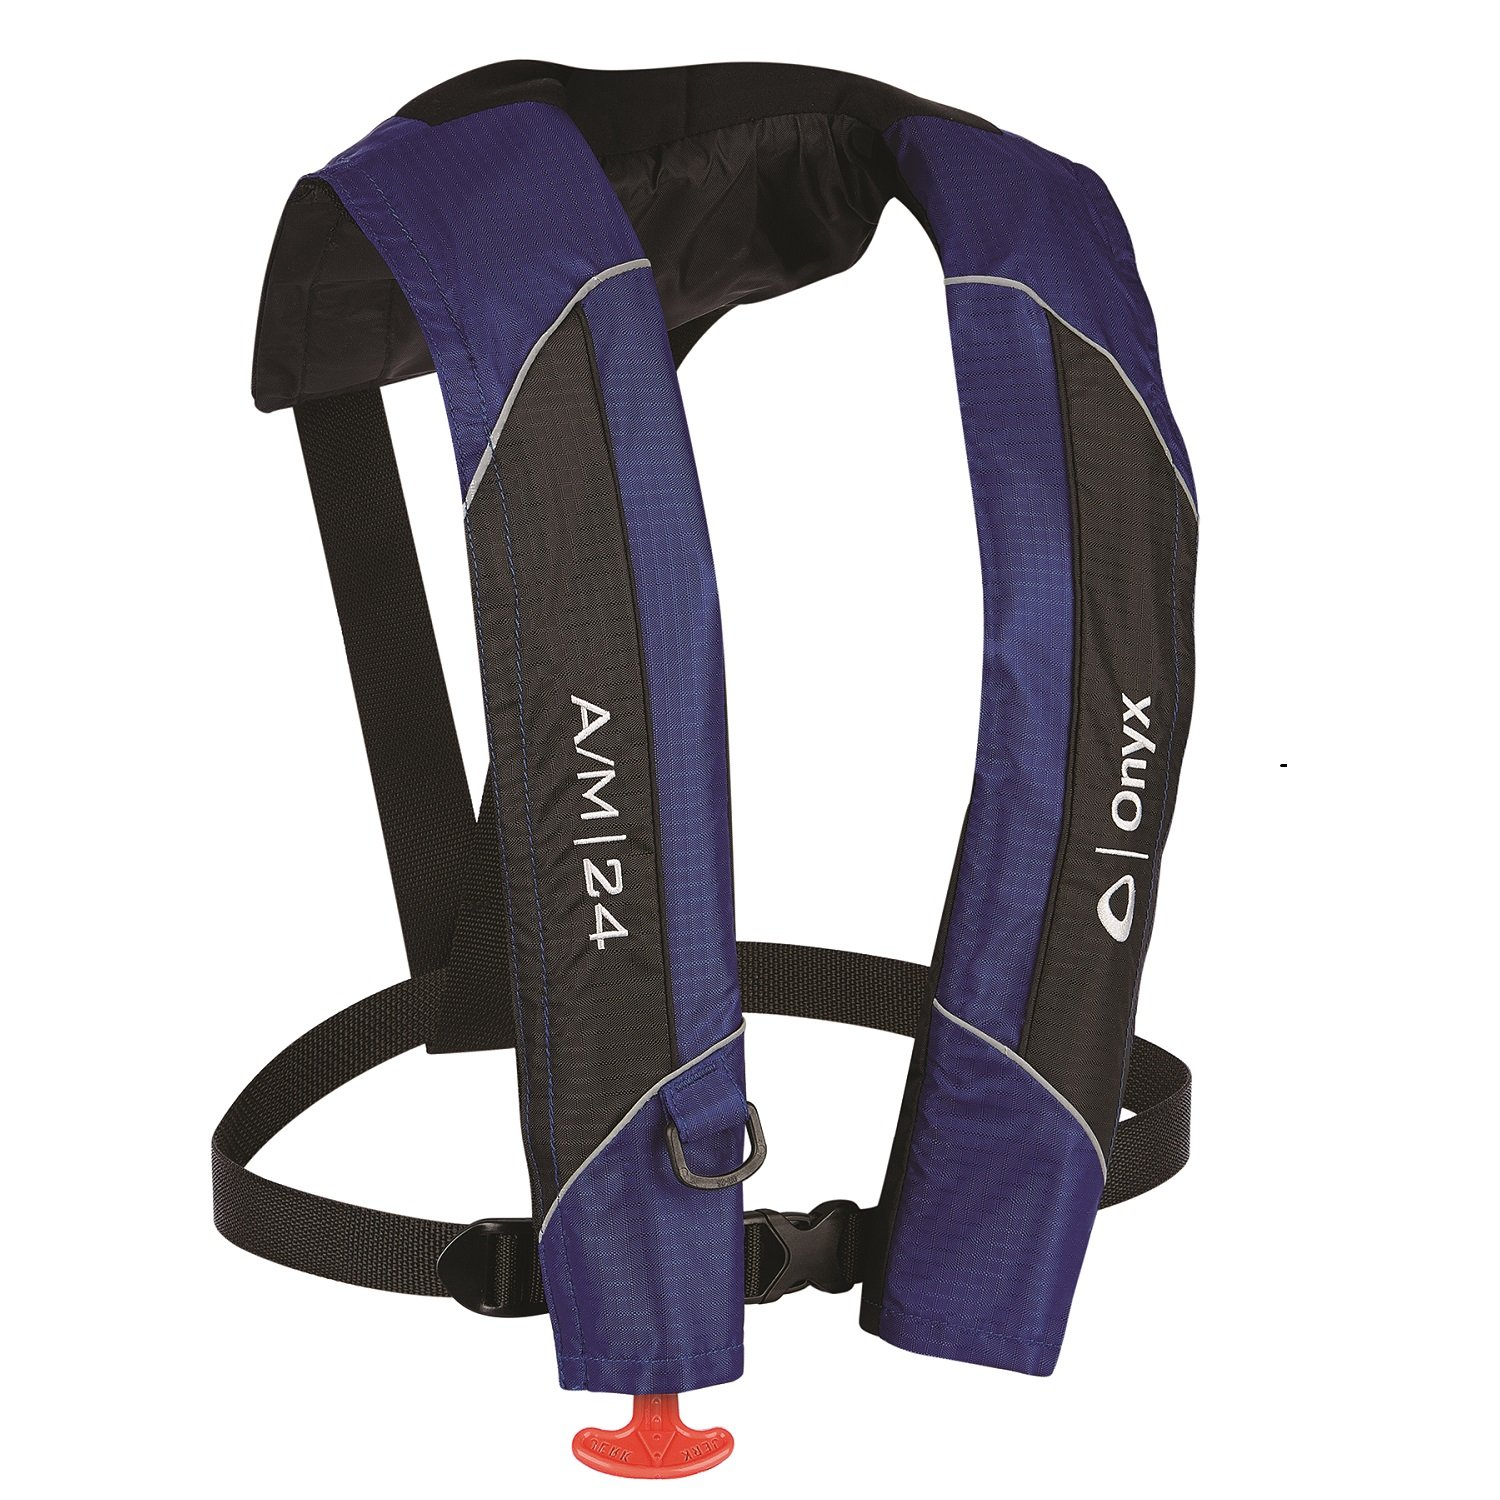 Onyx A/M-24 Automatic/Manual Inflatable Life Jacket, Blue by Onyx